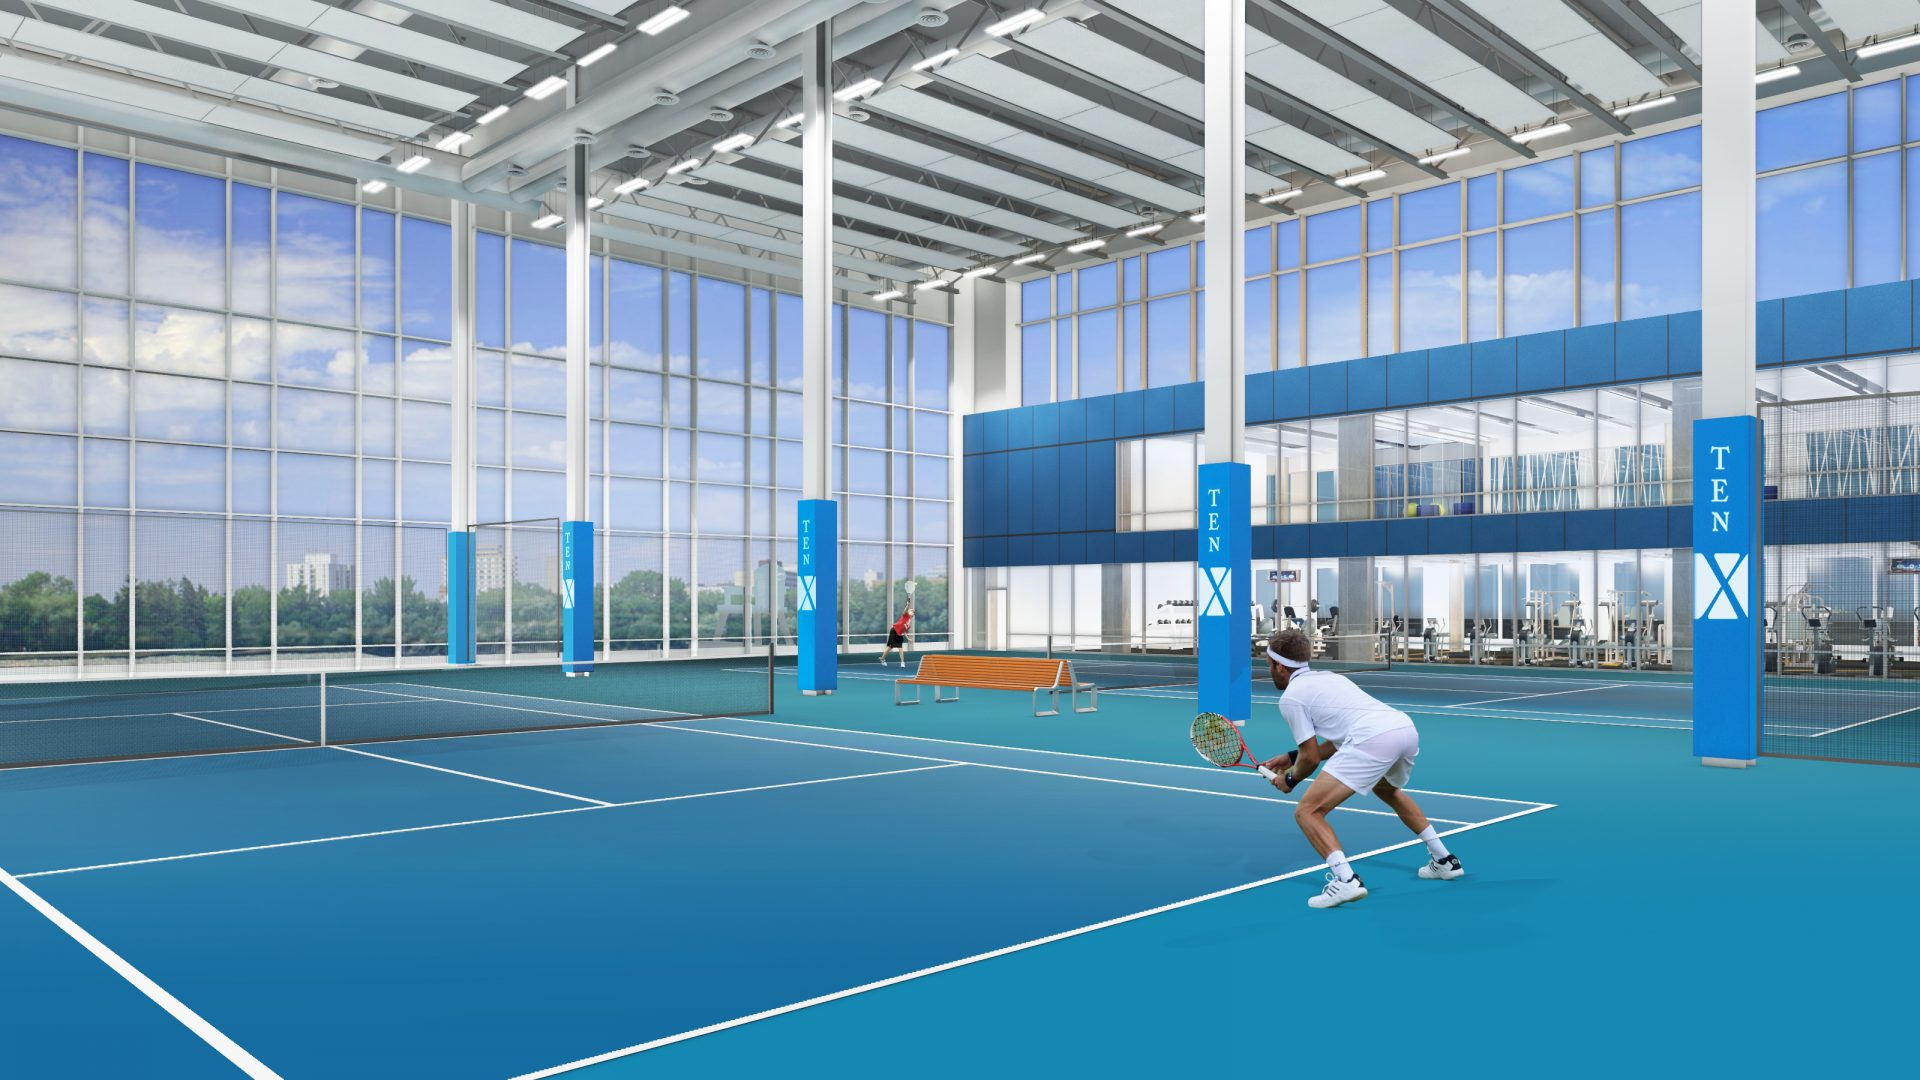 hotel x fitness centre and tennis arena